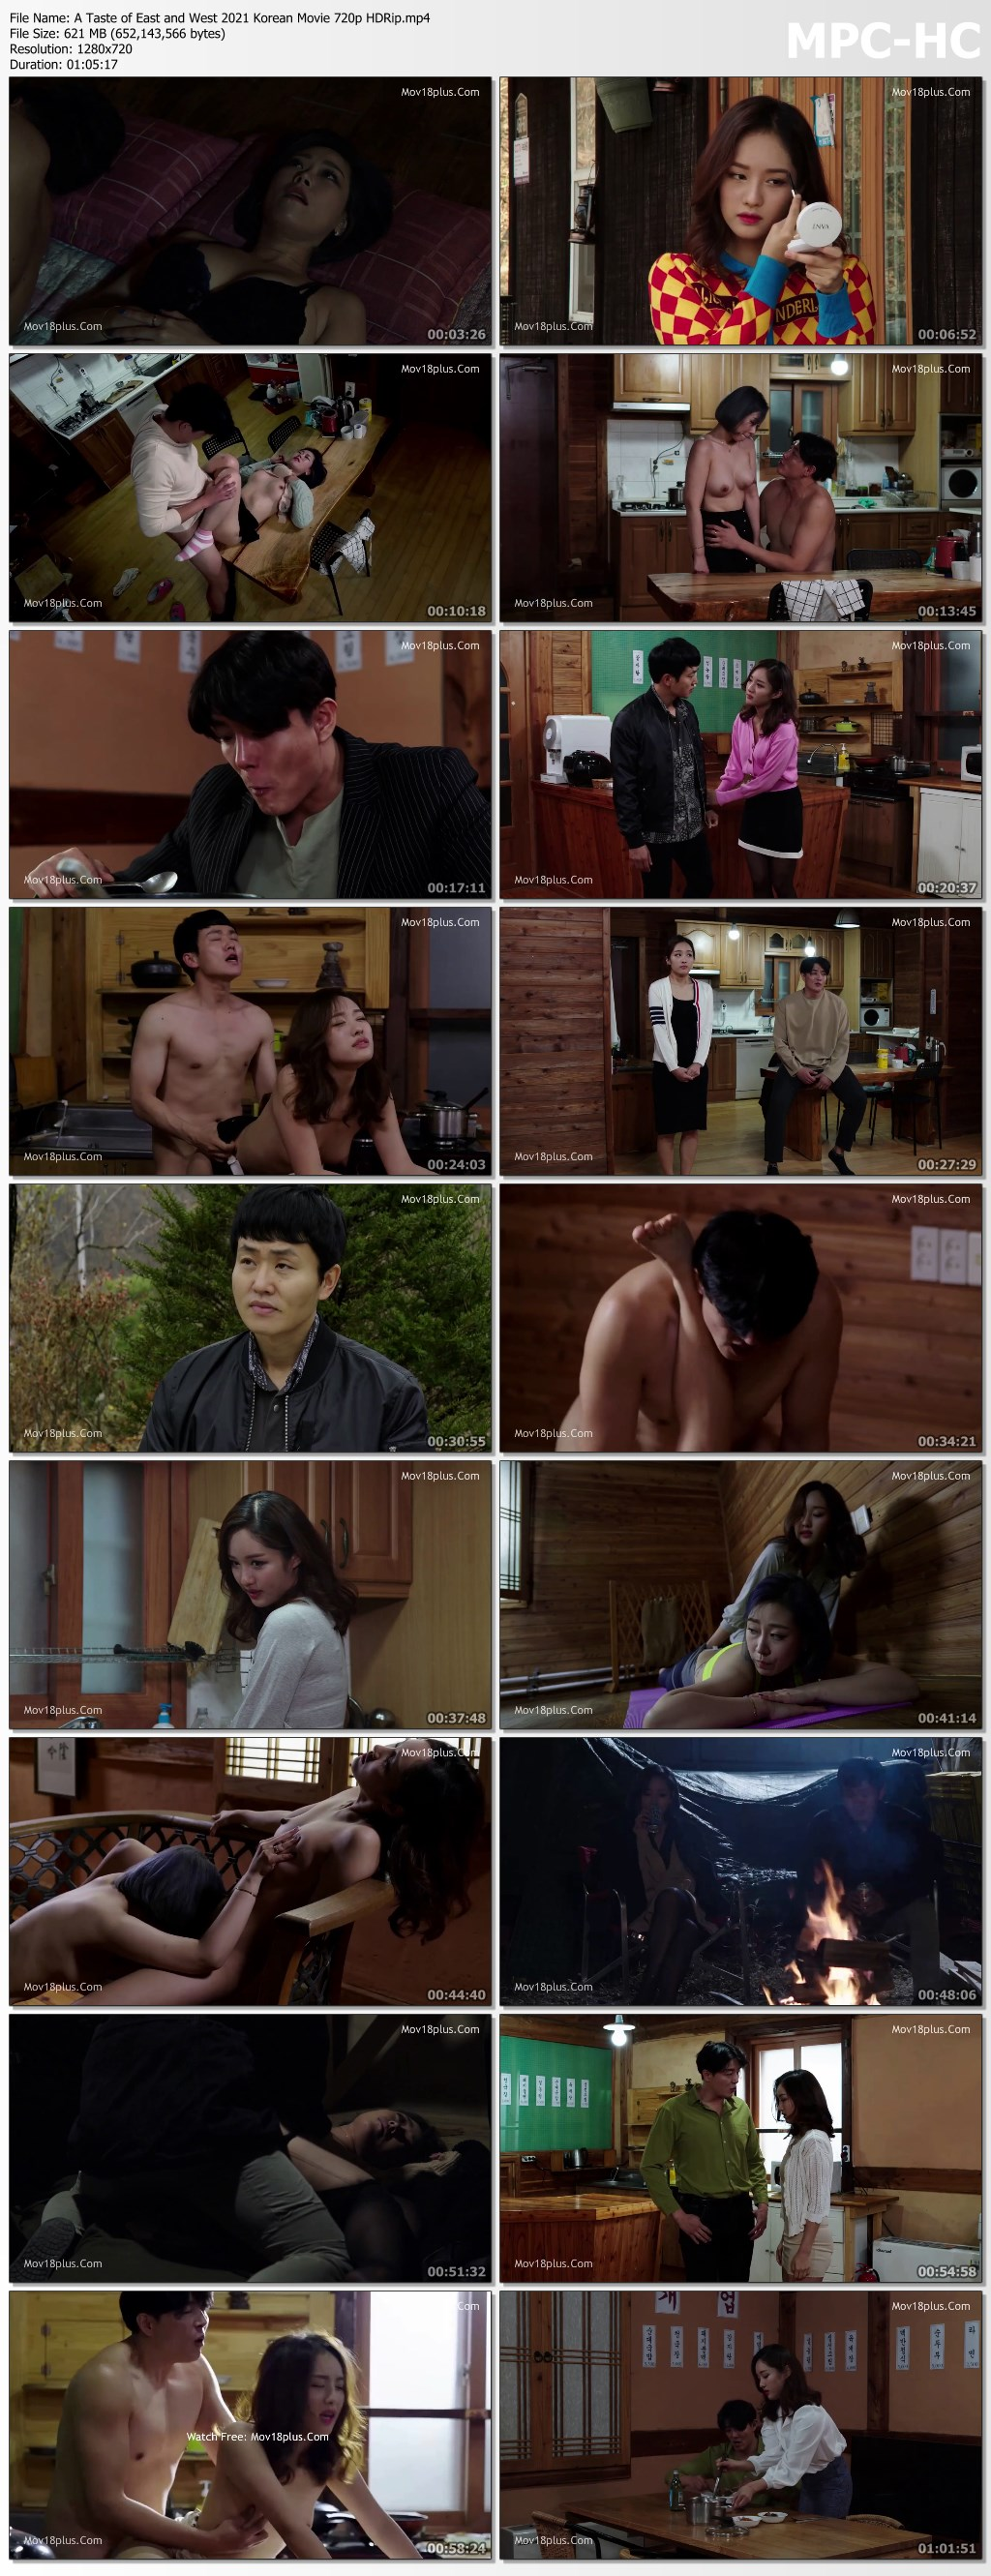 A Taste of East and West 2021 Korean Movie 720p HDRip.mp4 thumbs